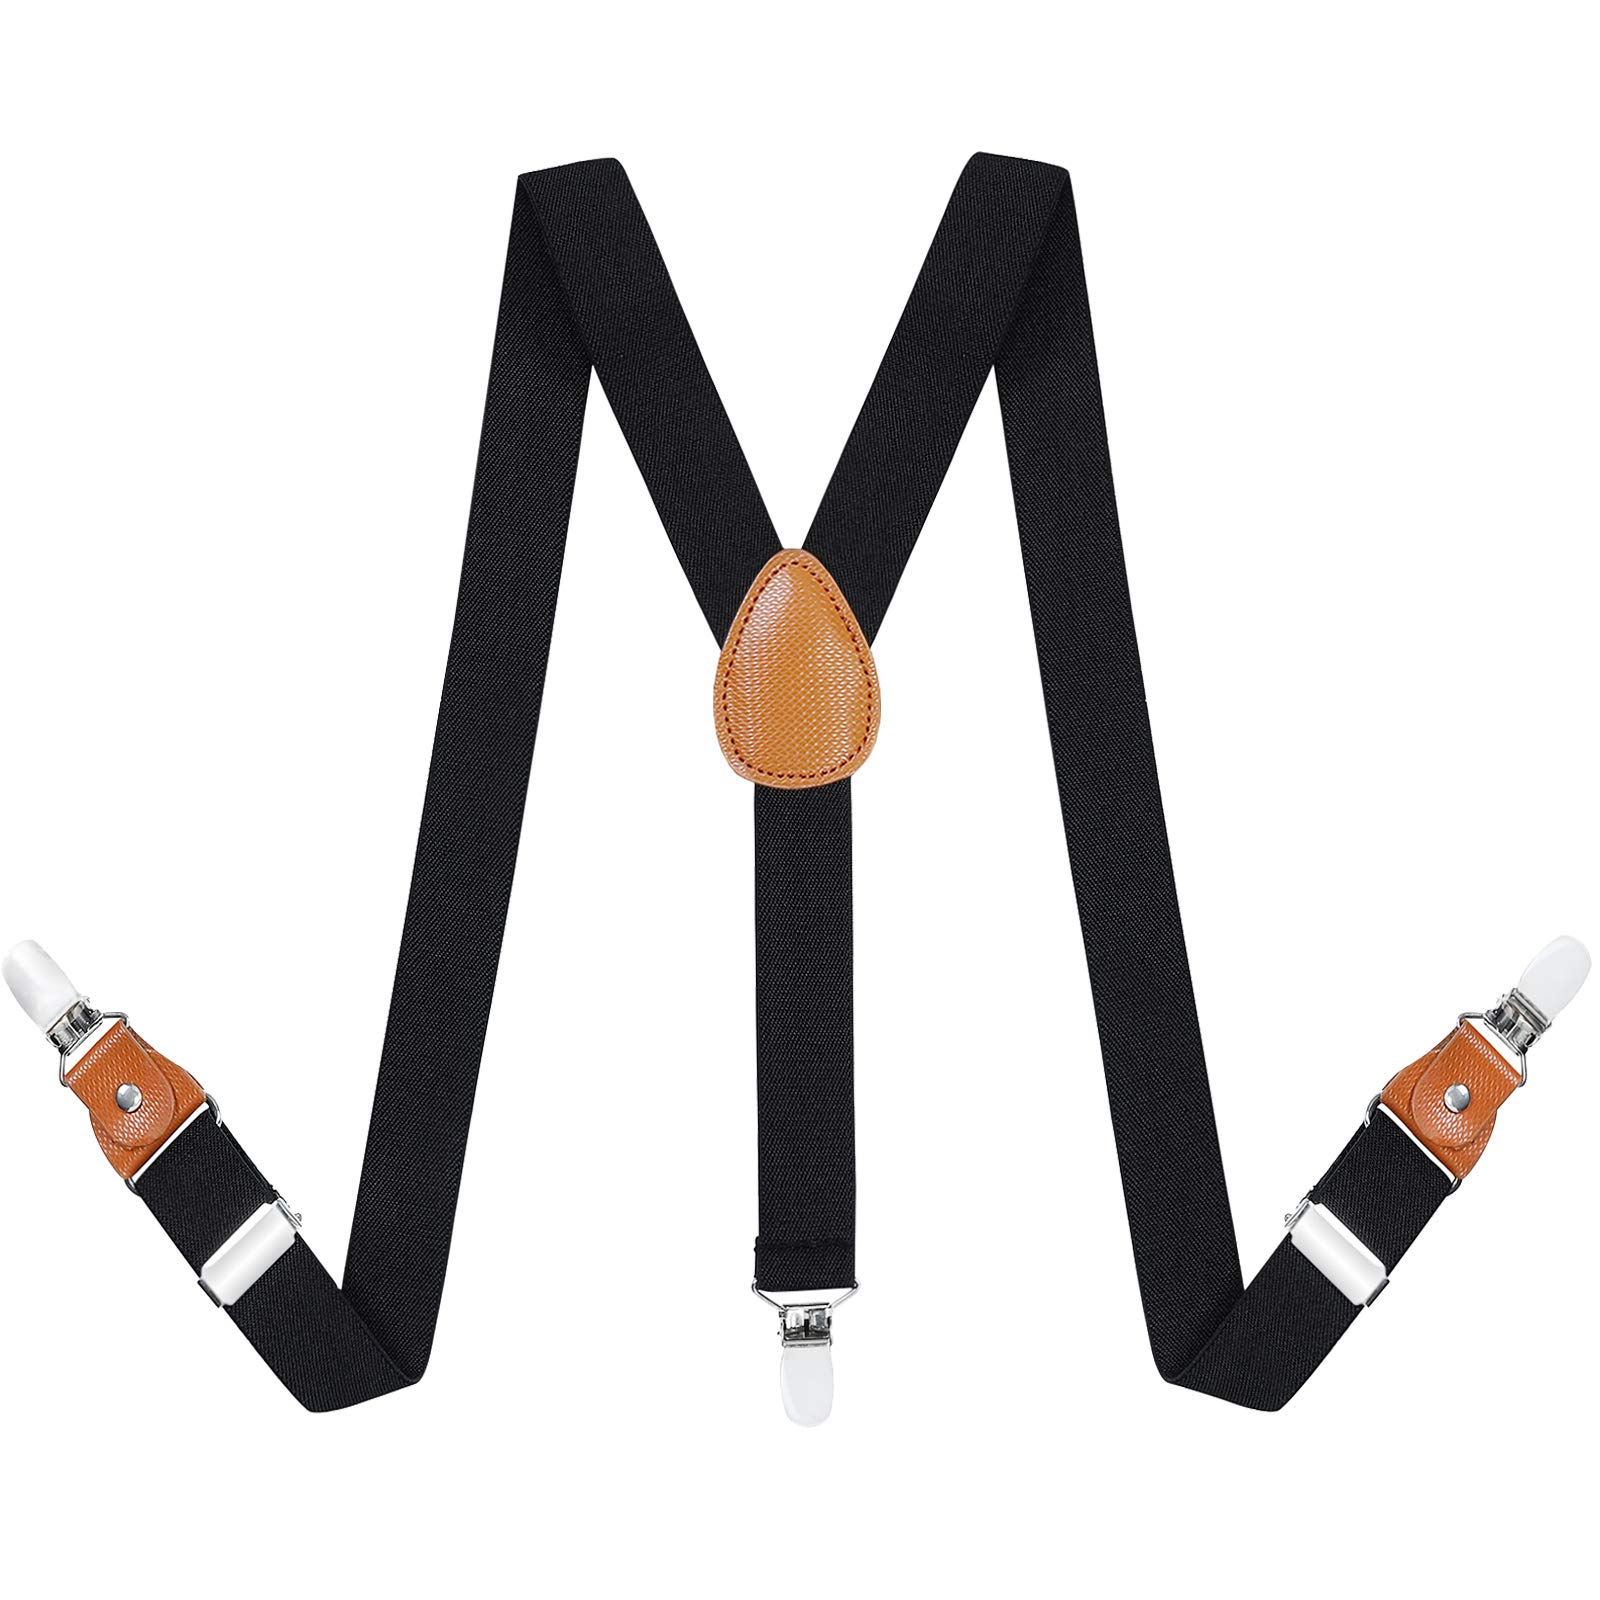 Toddlers Kids Boys Mens Suspenders - Y Back Adjustable Strong Clips Synthetic Leather Suspenders (27.6-29.5 Inch (3 Years - 8 Years), Black)